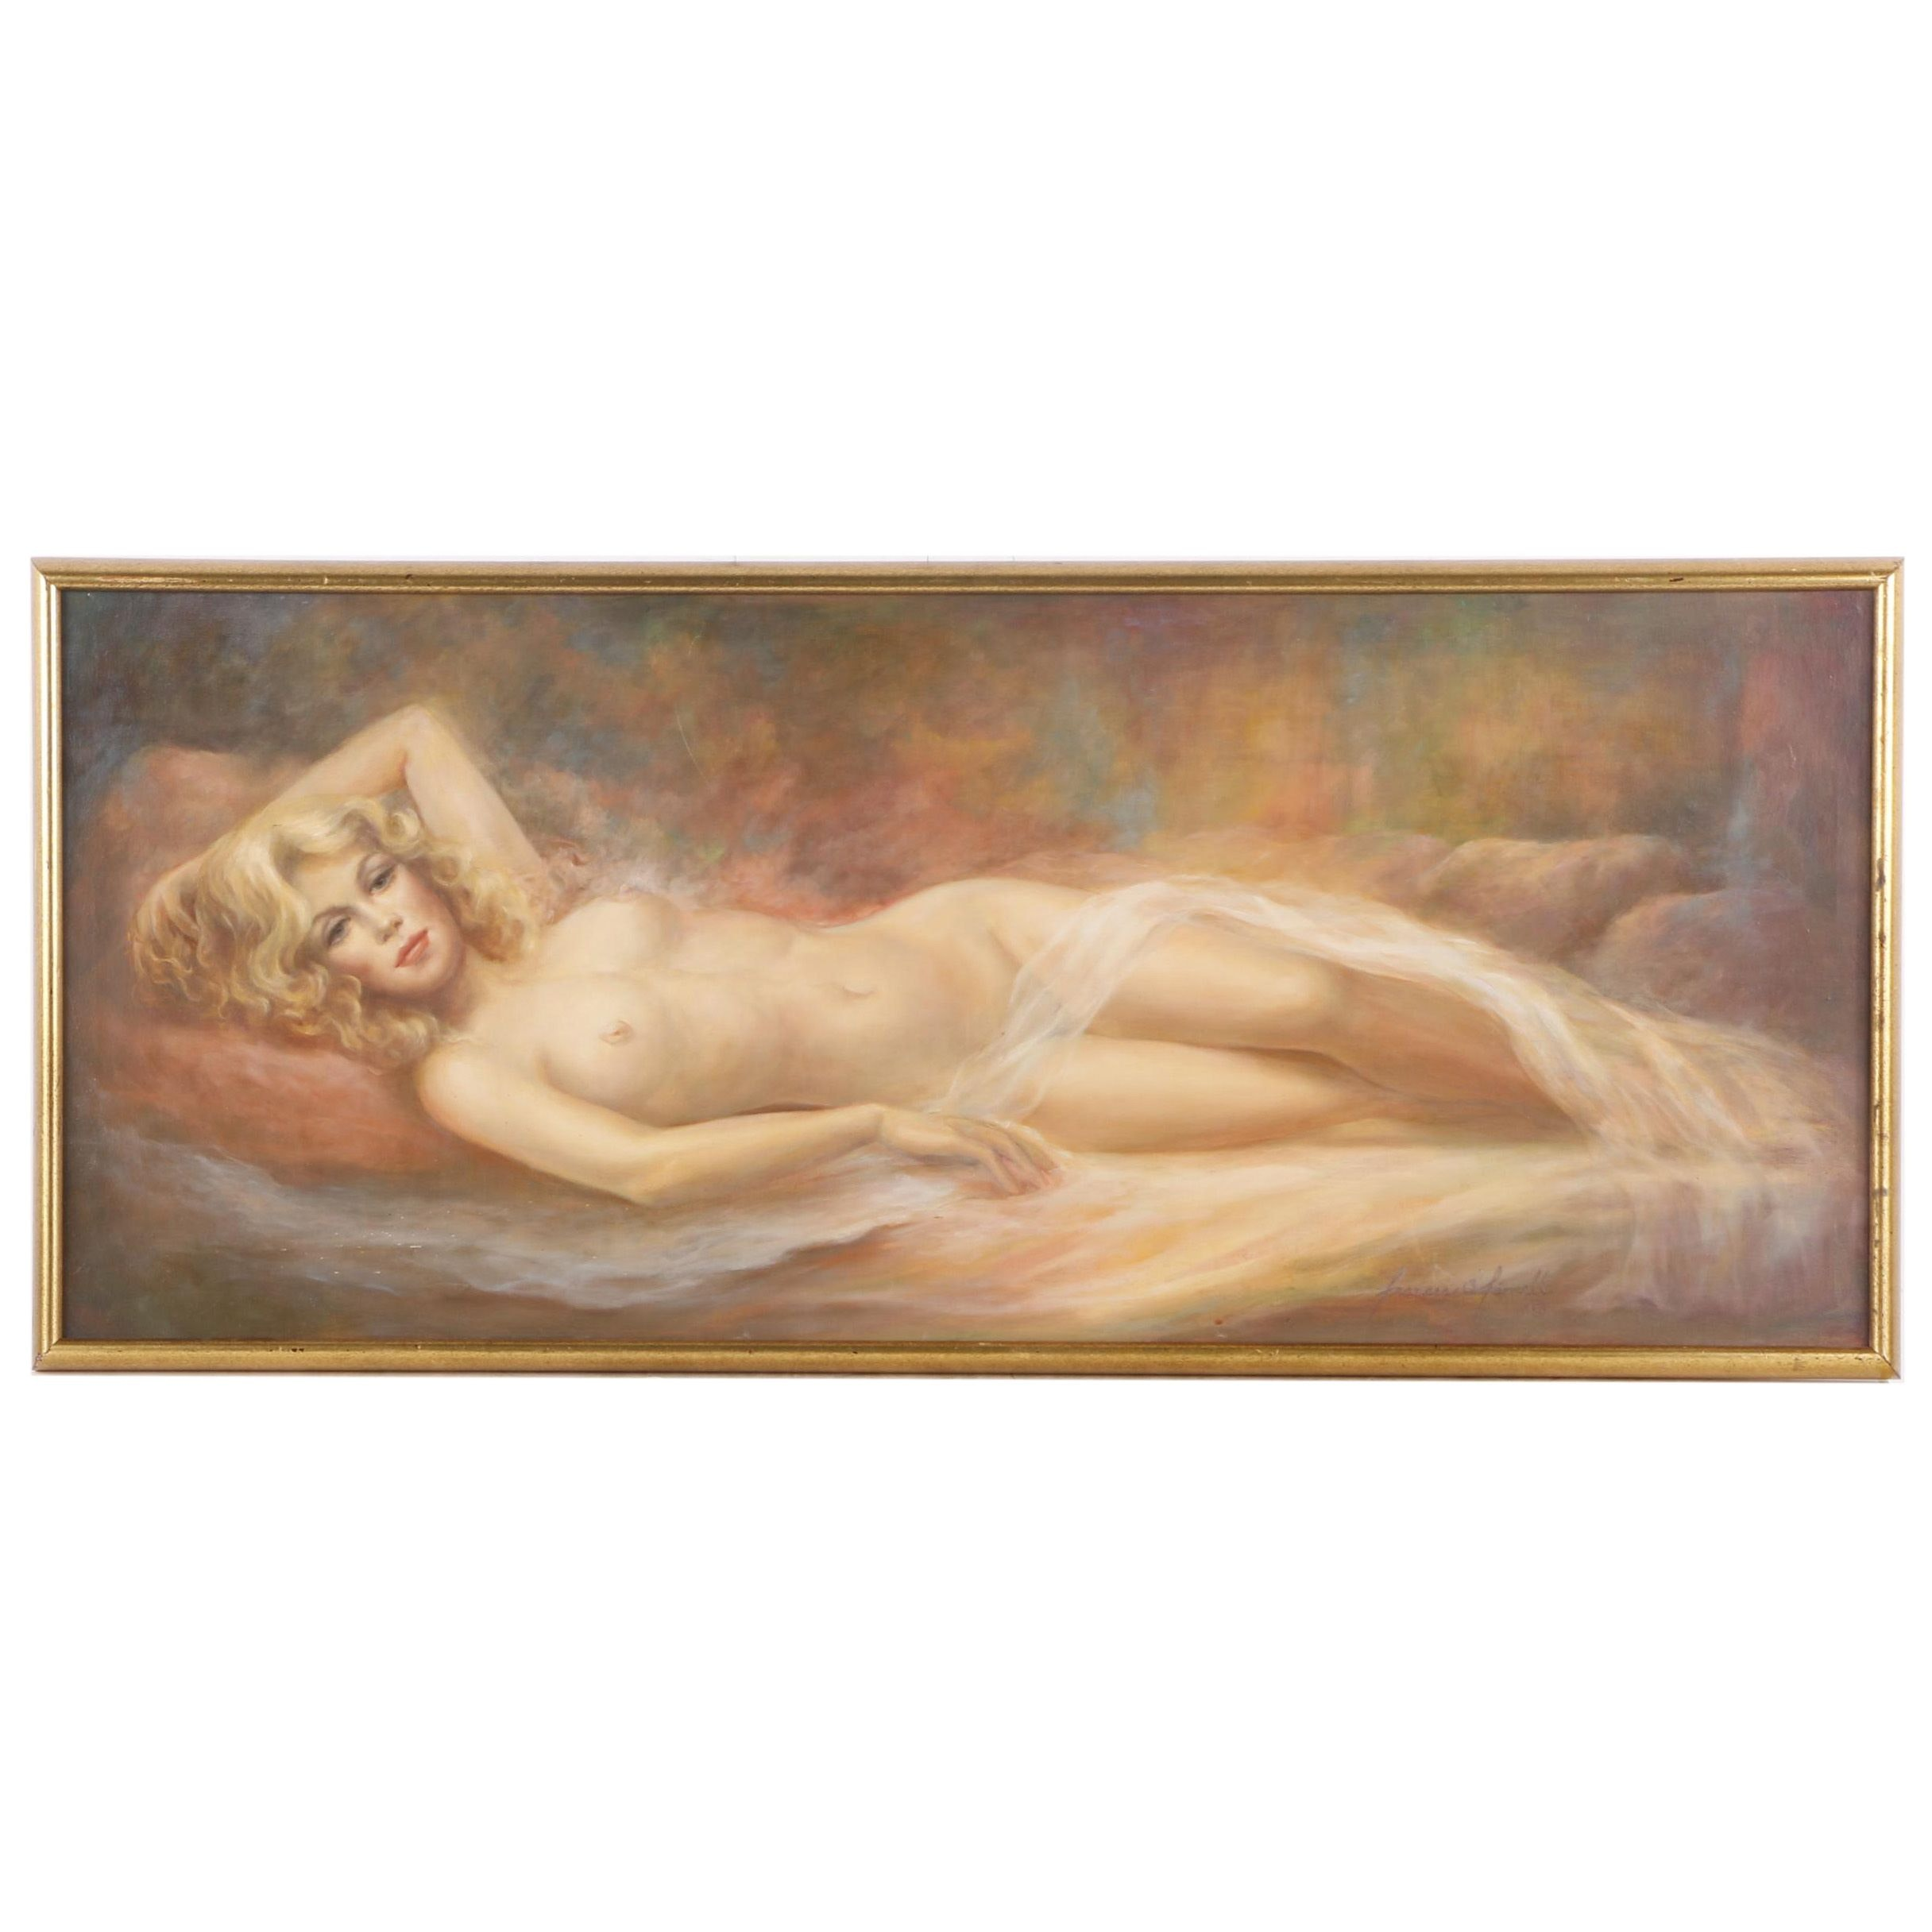 Frances O'Farrell Oil Painting of Reclining Nude